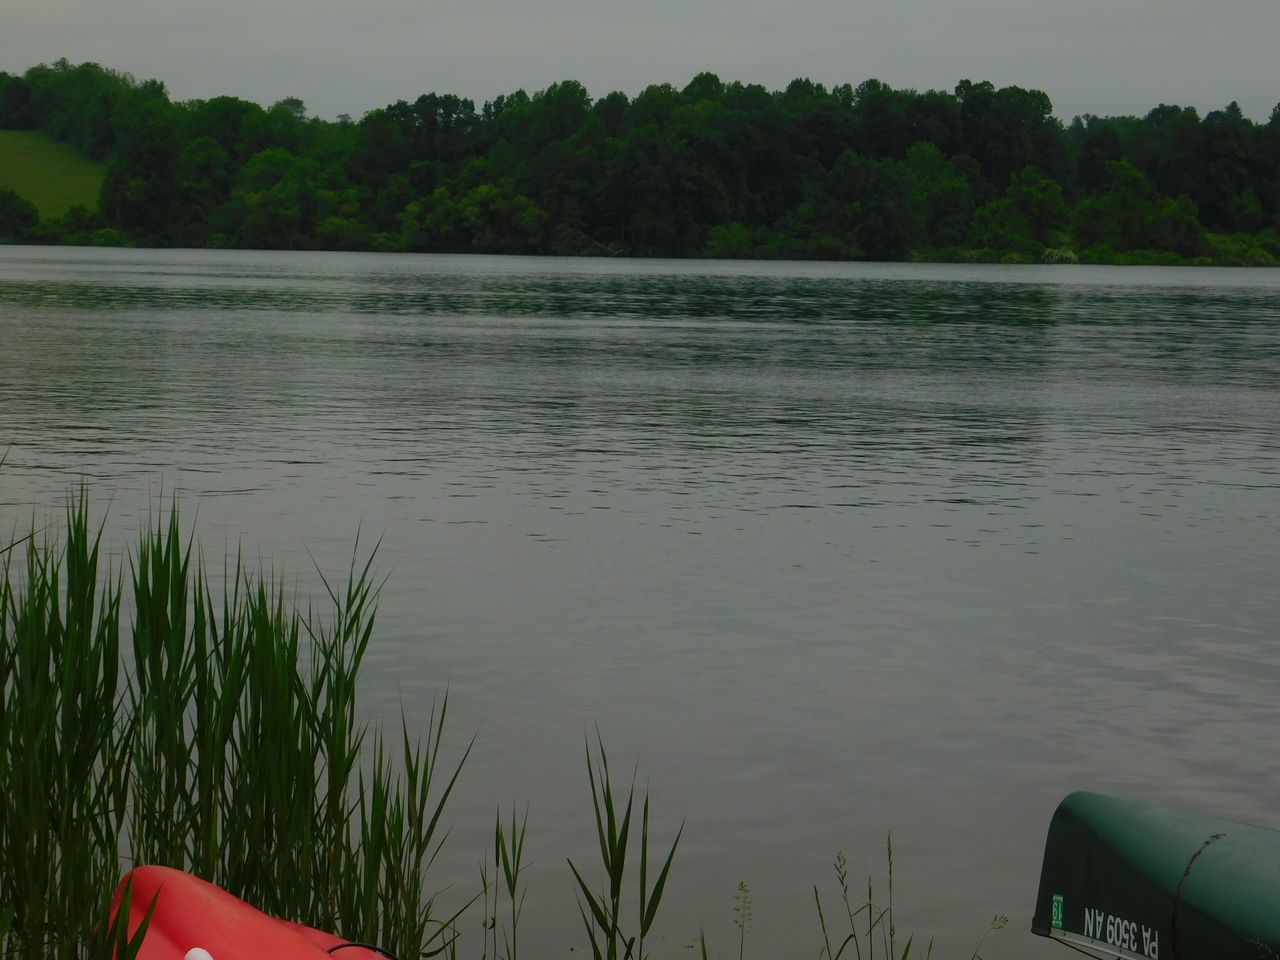 Marsh Creek Pa Chester Springs Pennsylvania Chester County Pennsylvania Kayaking Canoes Water Nature Tree Lake Growth No People Tranquility Outdoors Beauty In Nature Tranquil Scene Scenics Plant Day Green Color Grass Sky